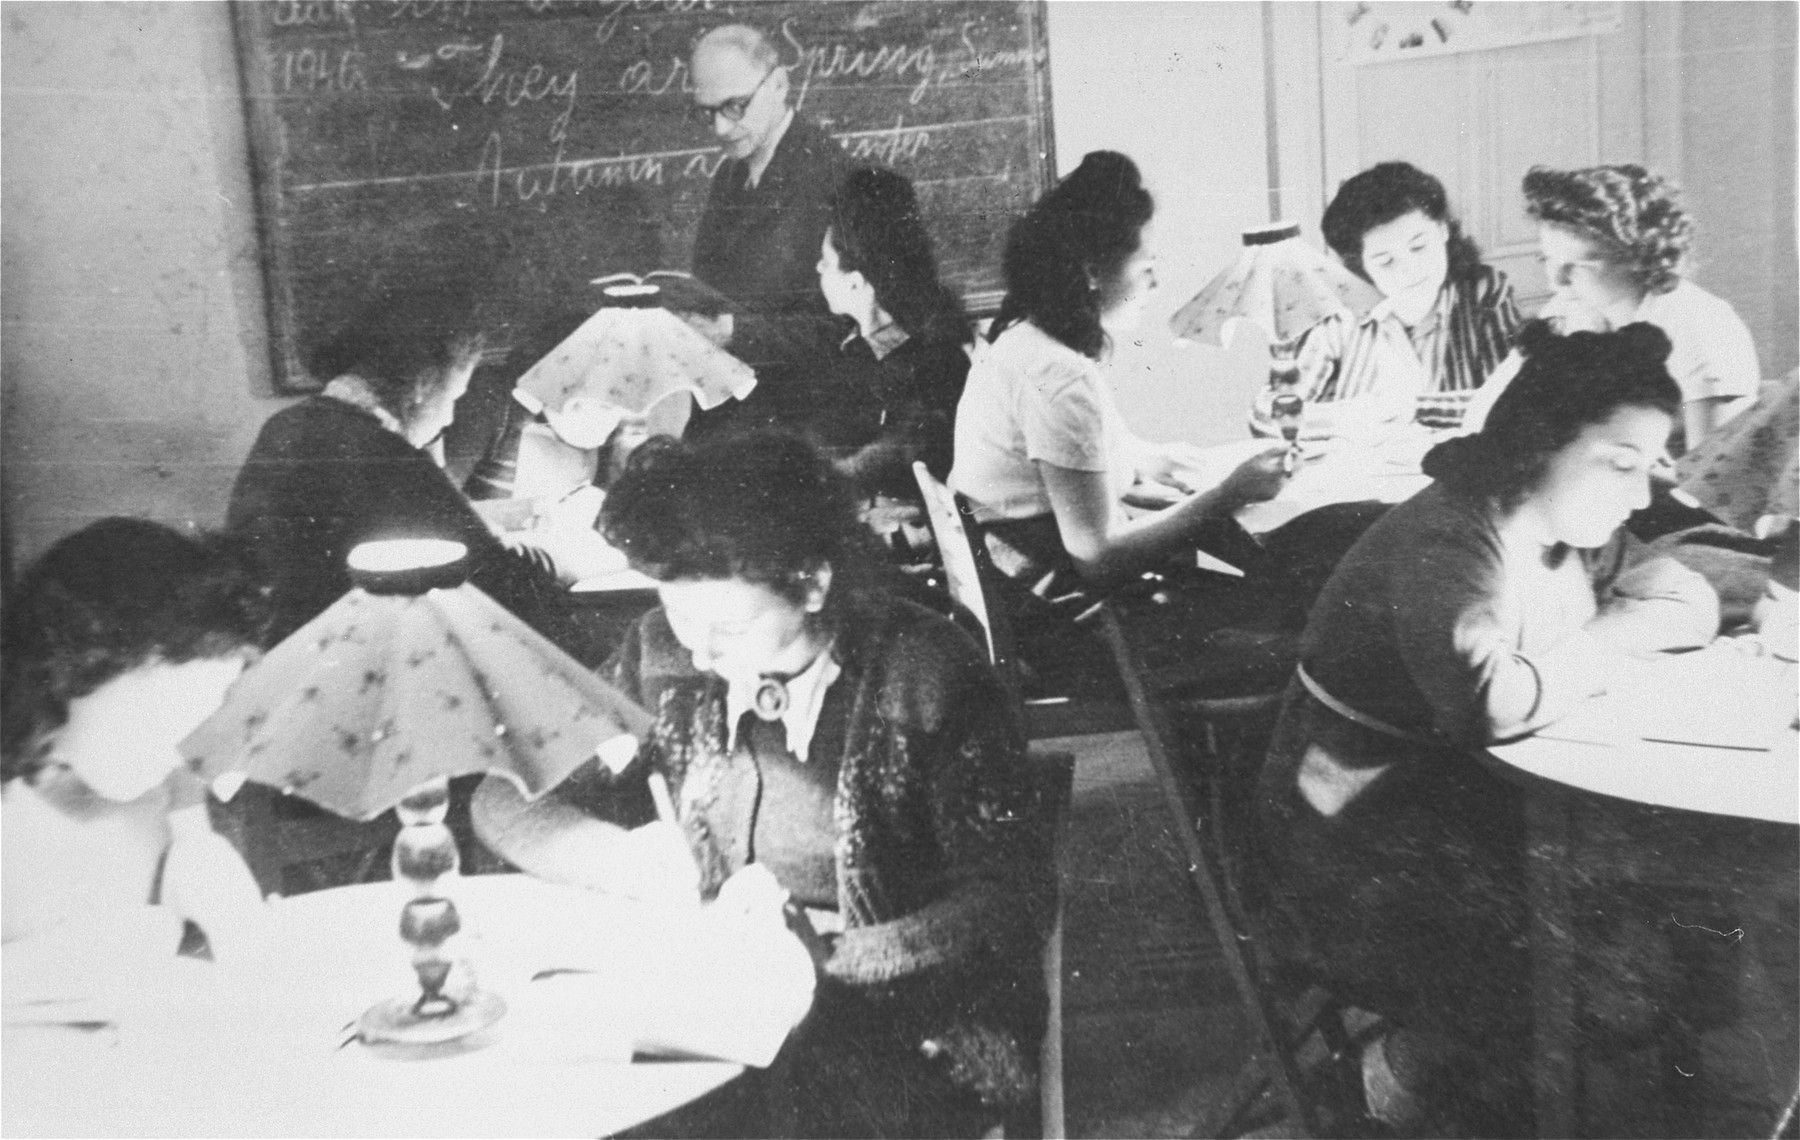 Young Jewish women living at the Le Tremplin children's home study in small groups seated around several tables.